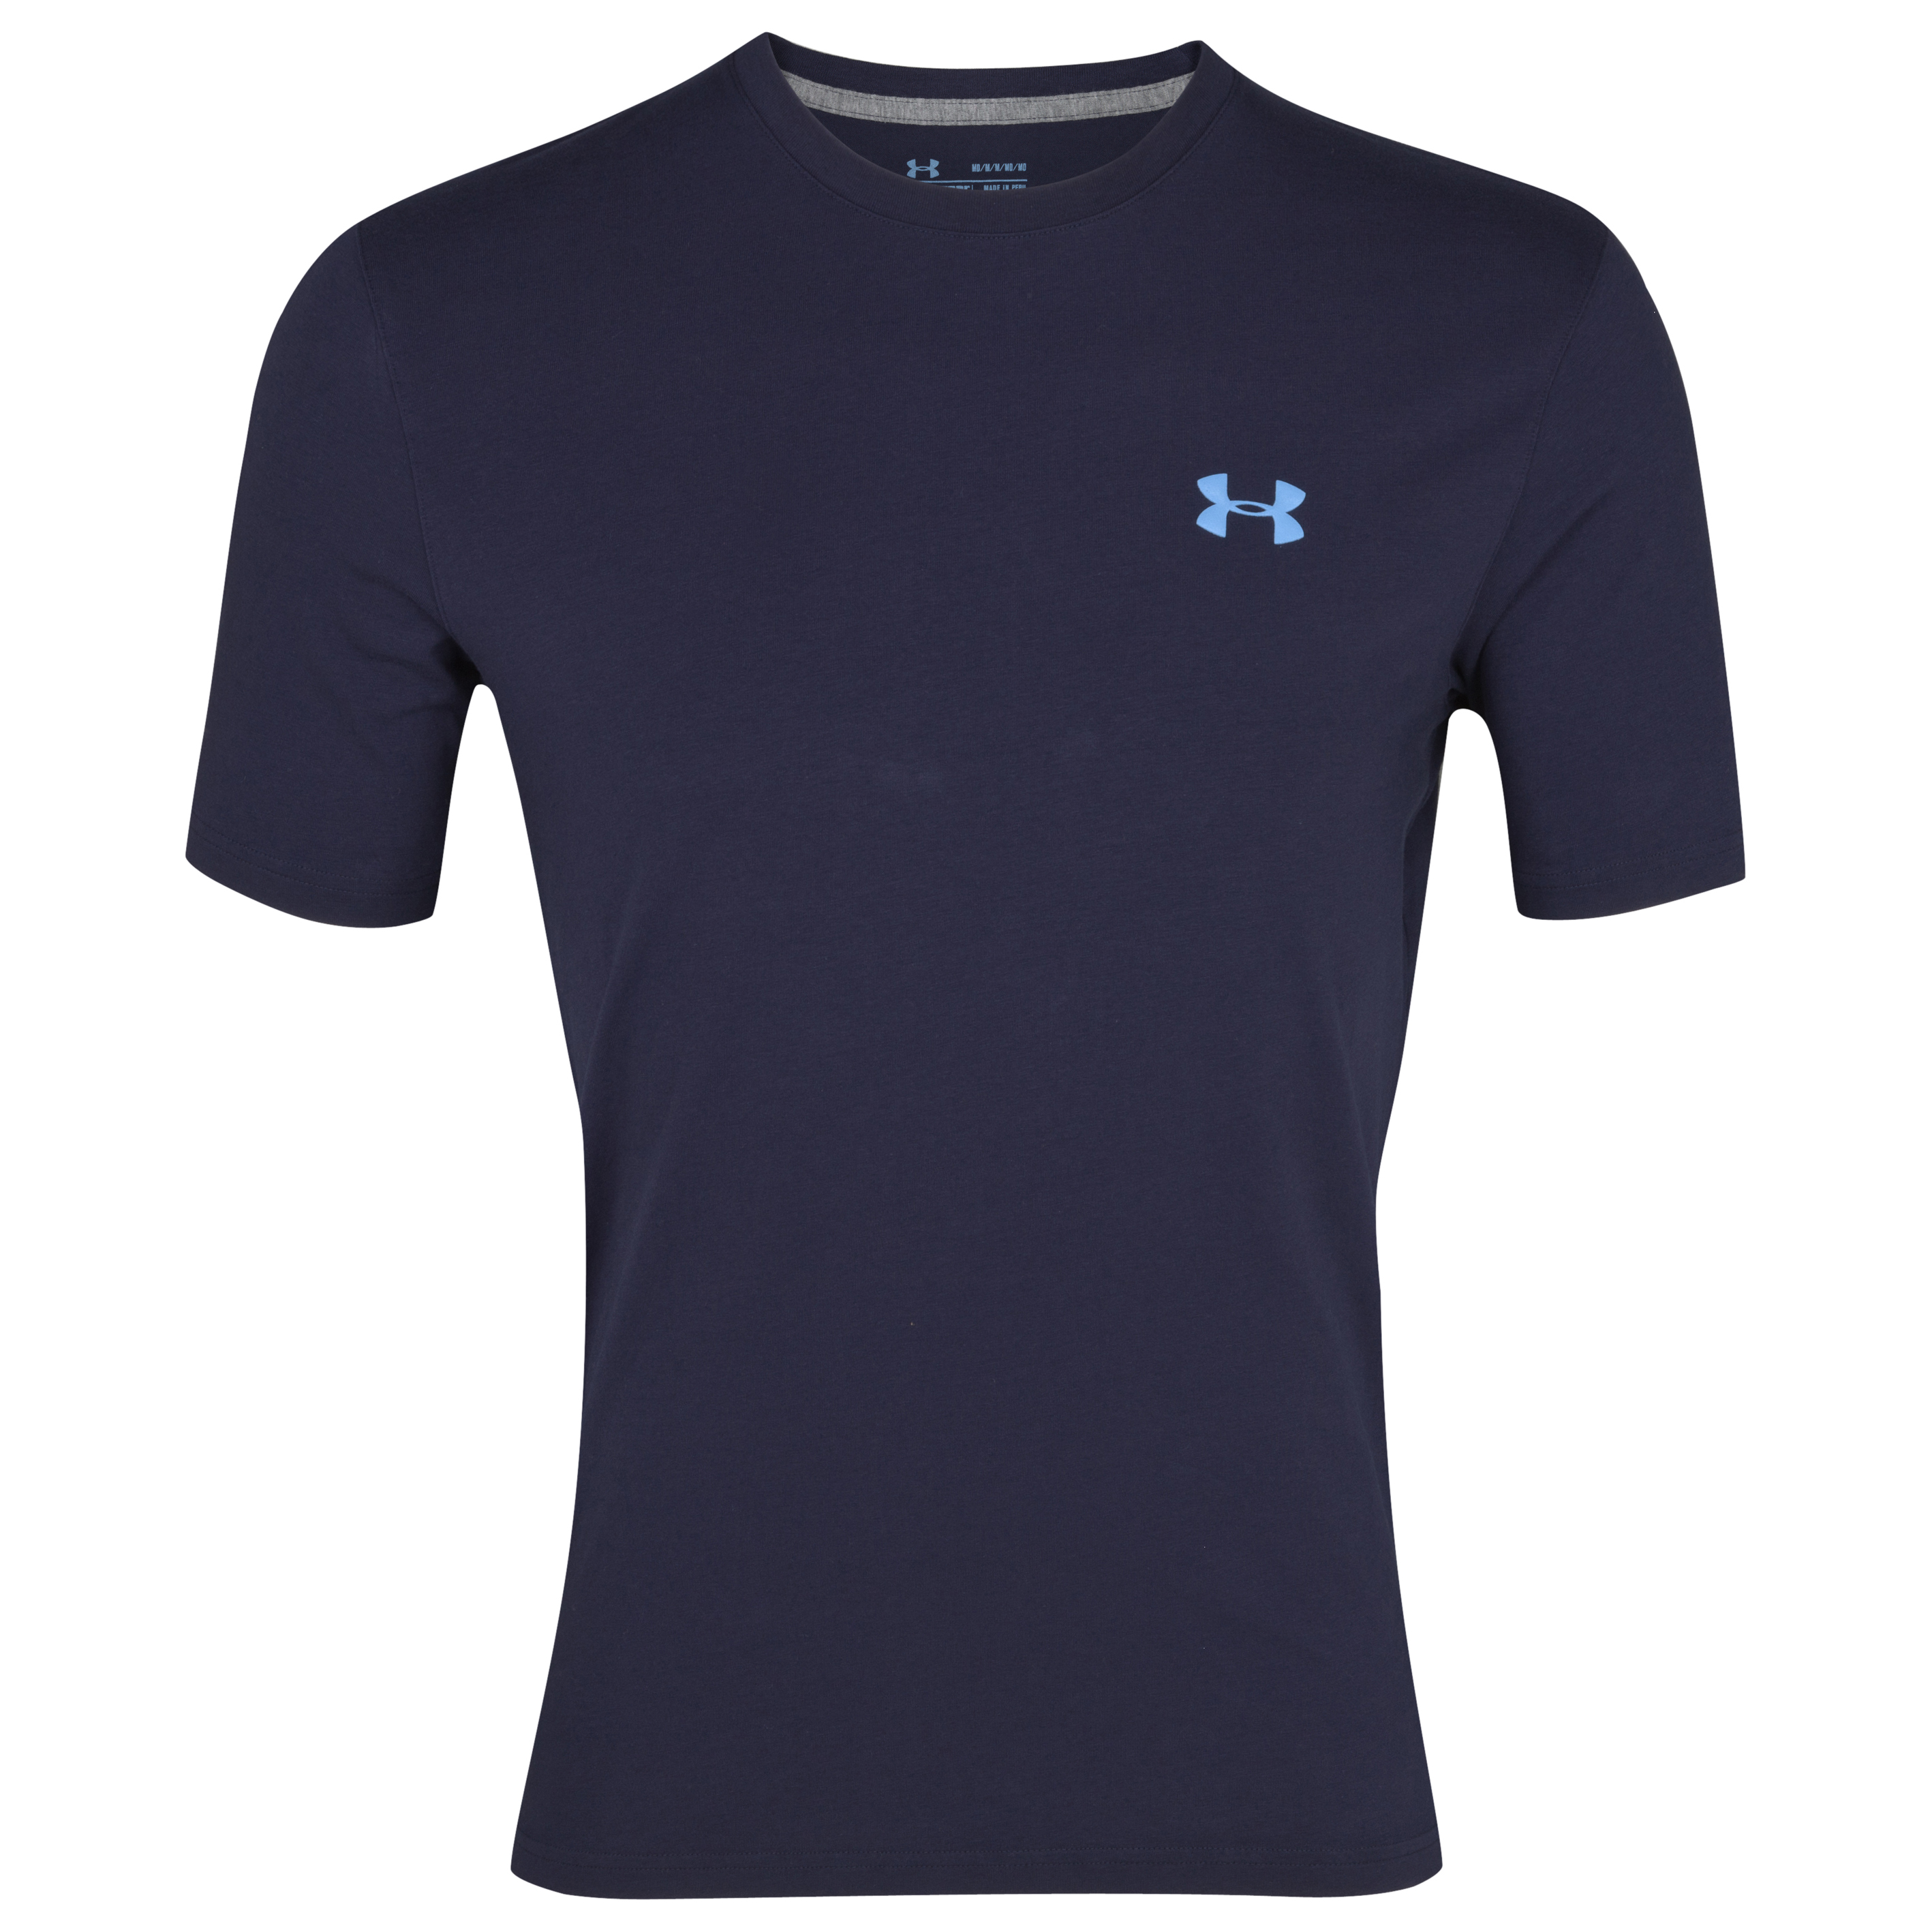 Under Armour Charged Cotton T-Shirt - Midnight Navy/Carolina Blue